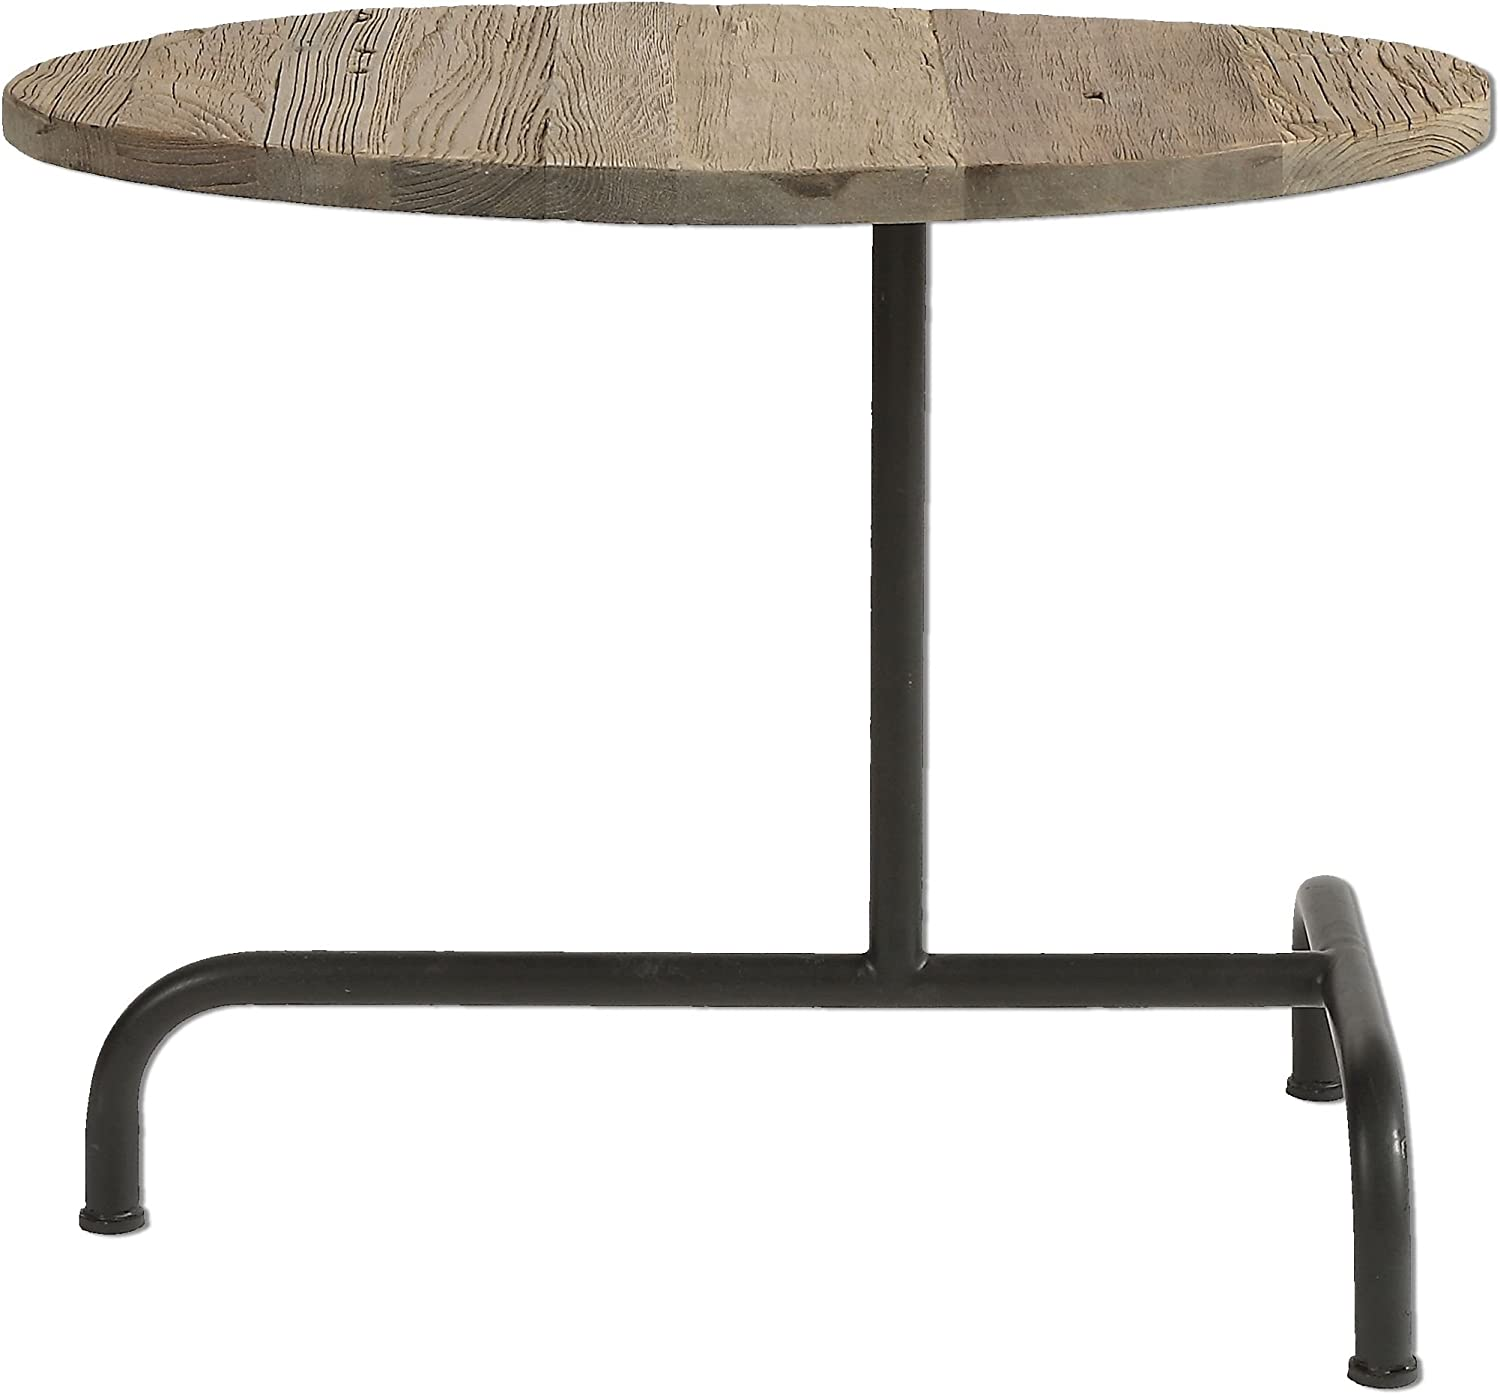 Reclaimed Wood & Iron Industrial Accent Side Table 71zQ2BXZXDoLSL1500_